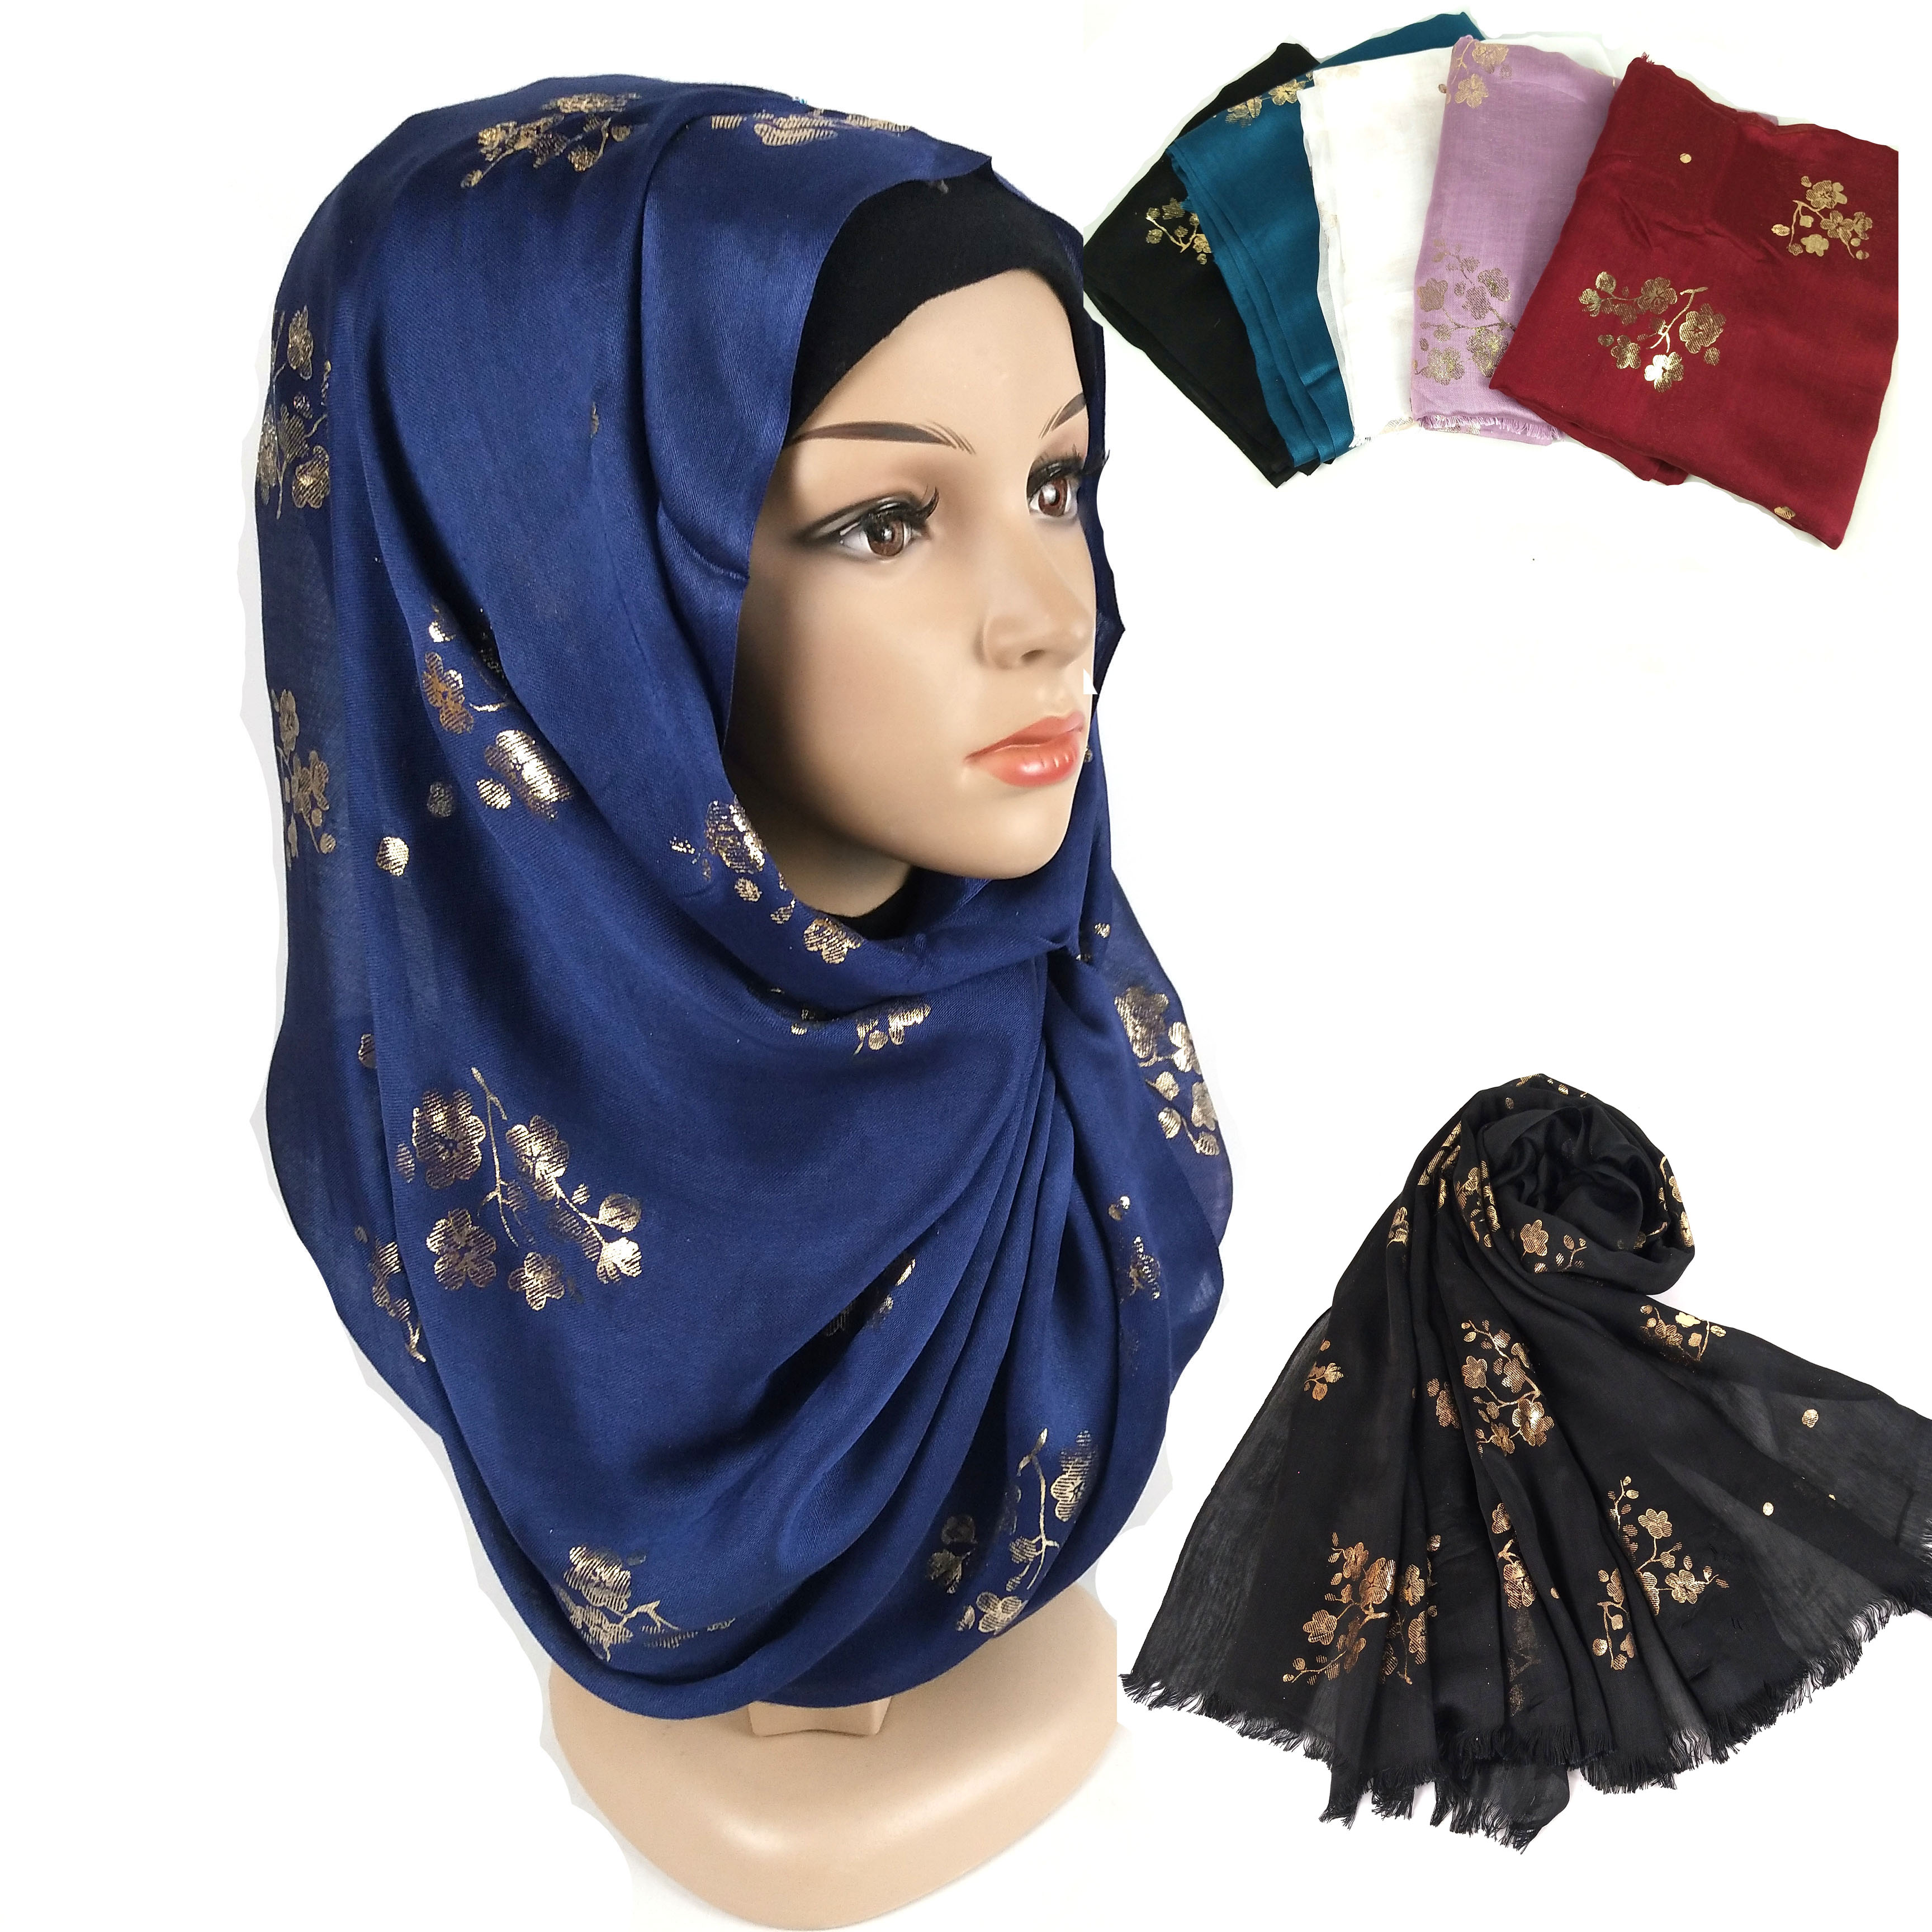 K9 10pcs High Quality Flower Printed Cotton Viscose Hijab Shawl Scarf/scarf Crinkle  Women Wrap Headband Can Choose Colors